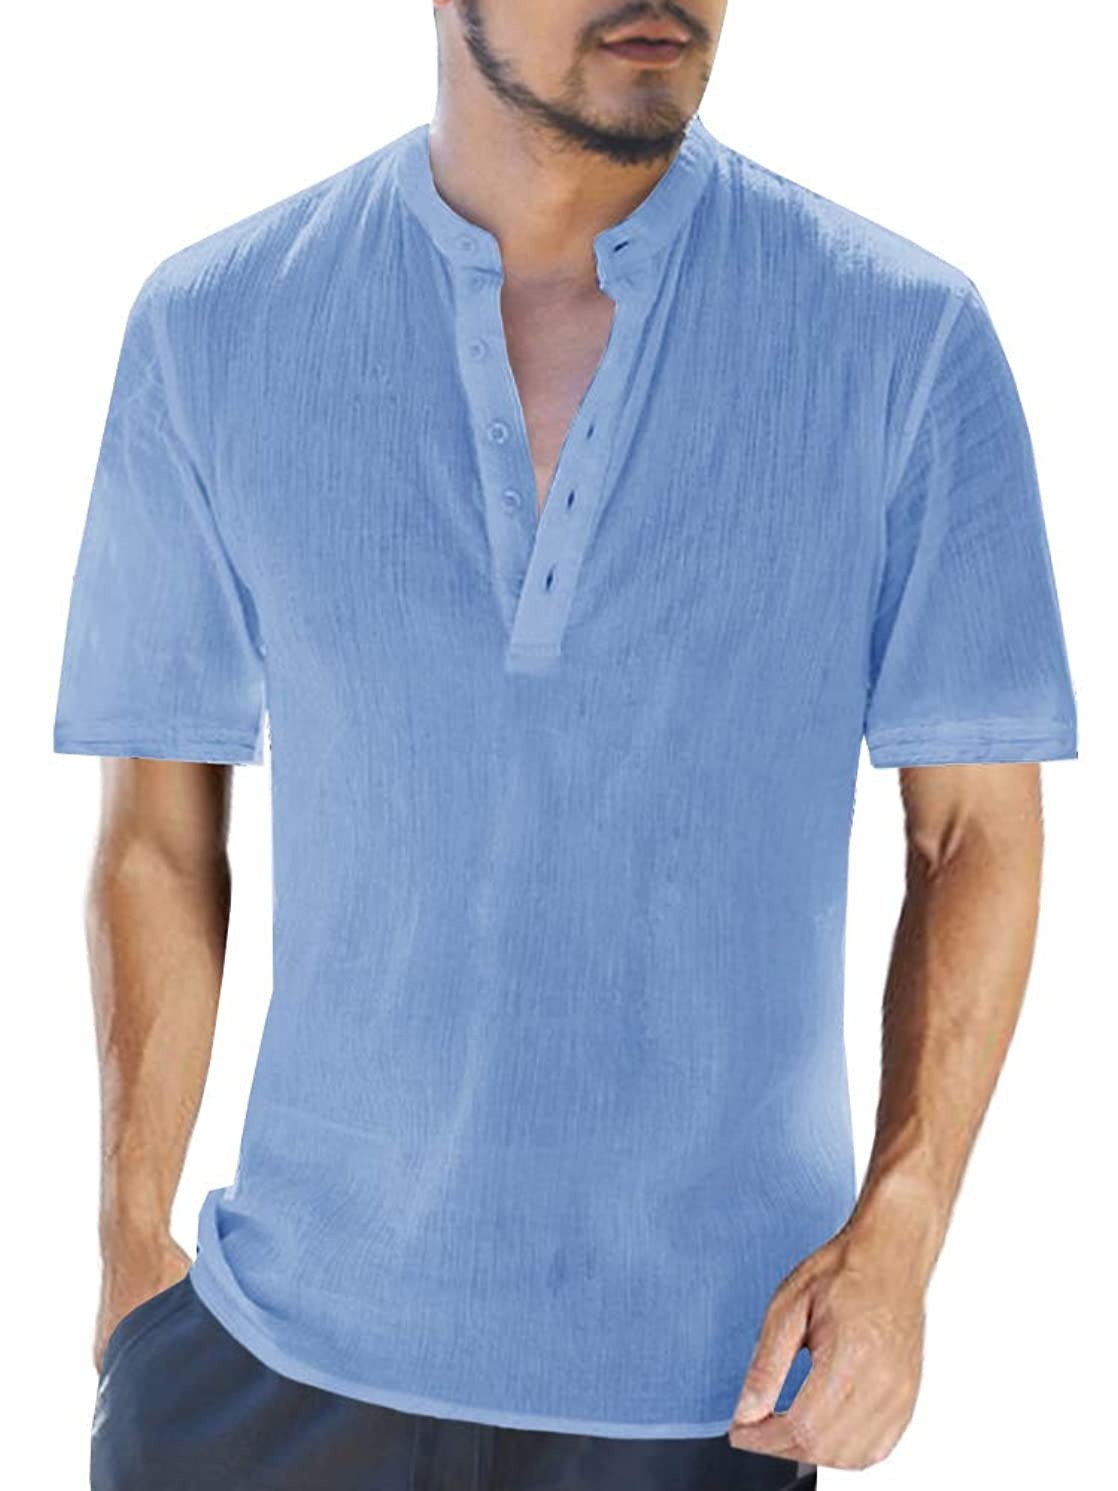 Beotyshow Mens Stylish Short-Sleeve Tops, Mens Round Neck Henley Shirts Casual Cotton Menswear for Office